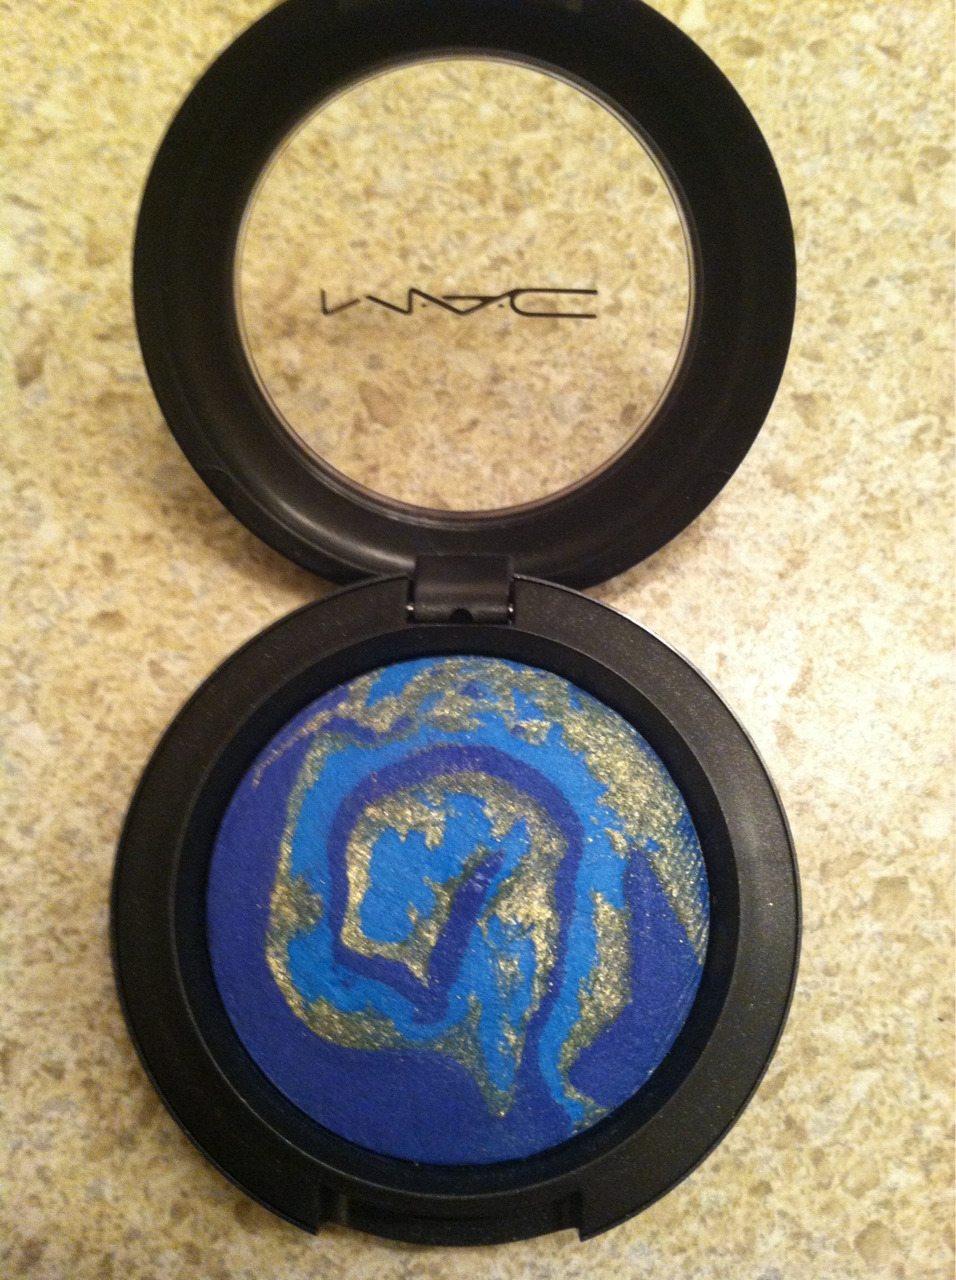 MAC's Sky Mineralize Eyeshadow.